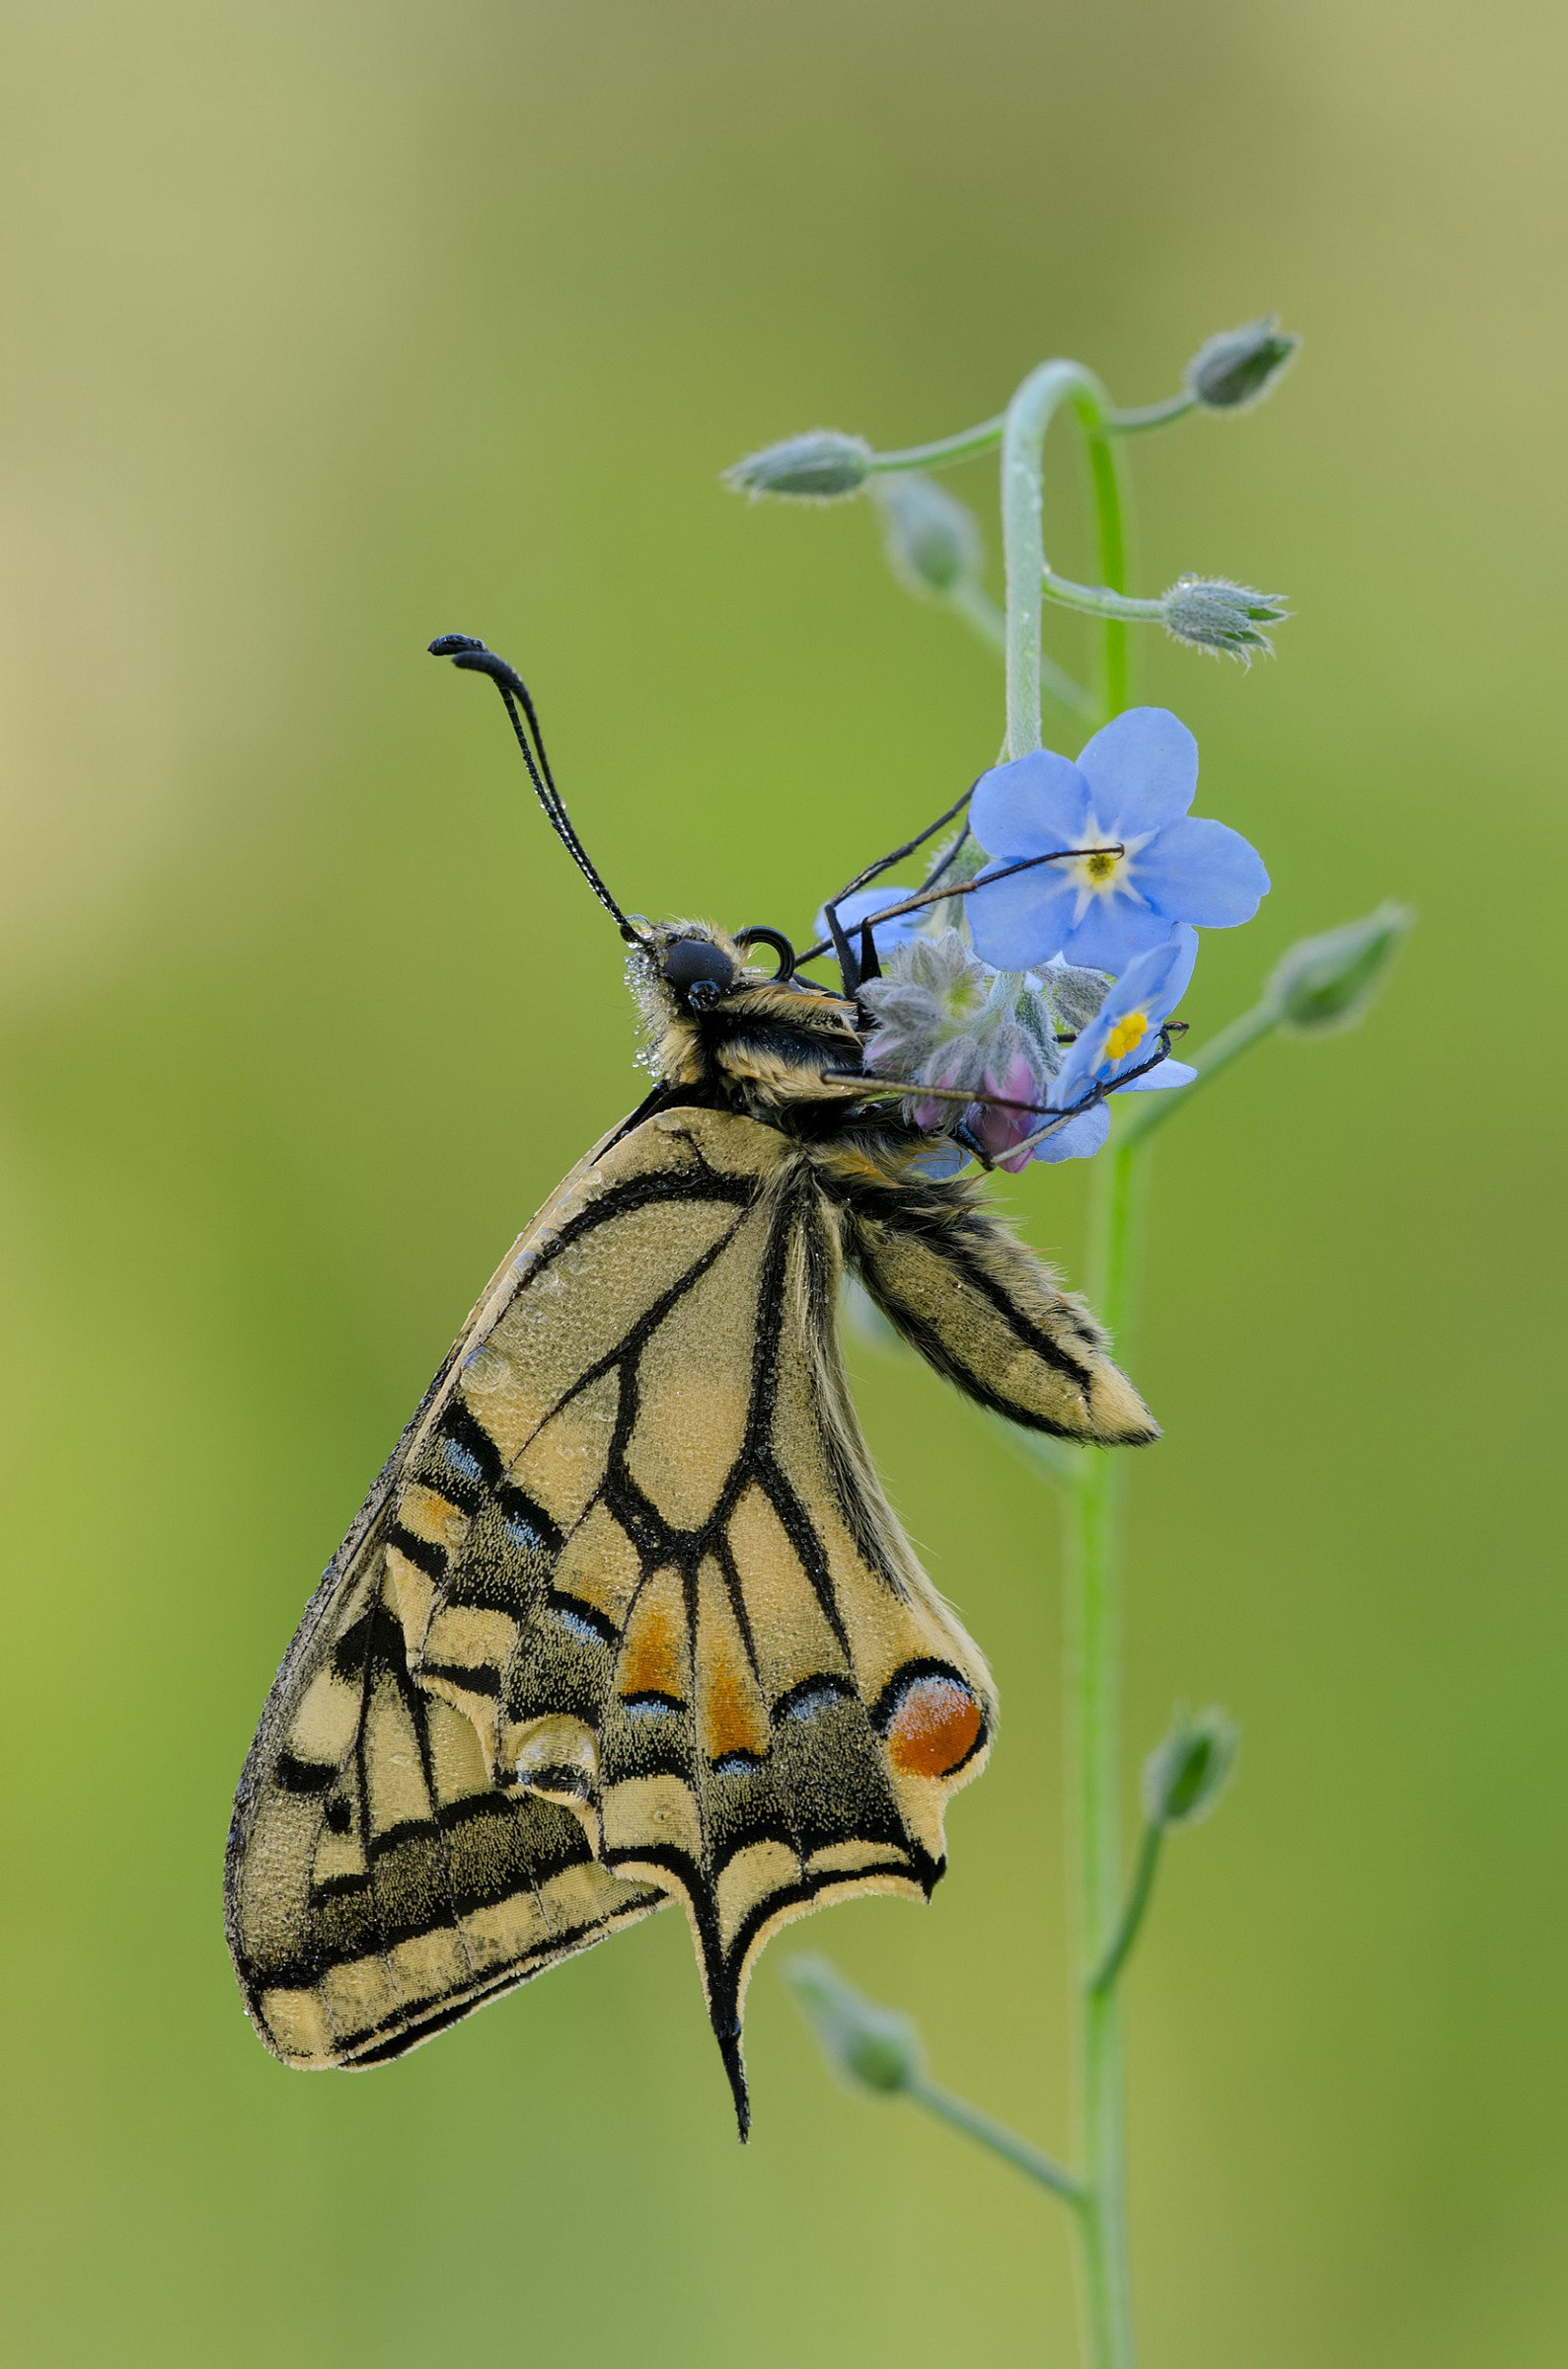 The ups and downs of Machaon...